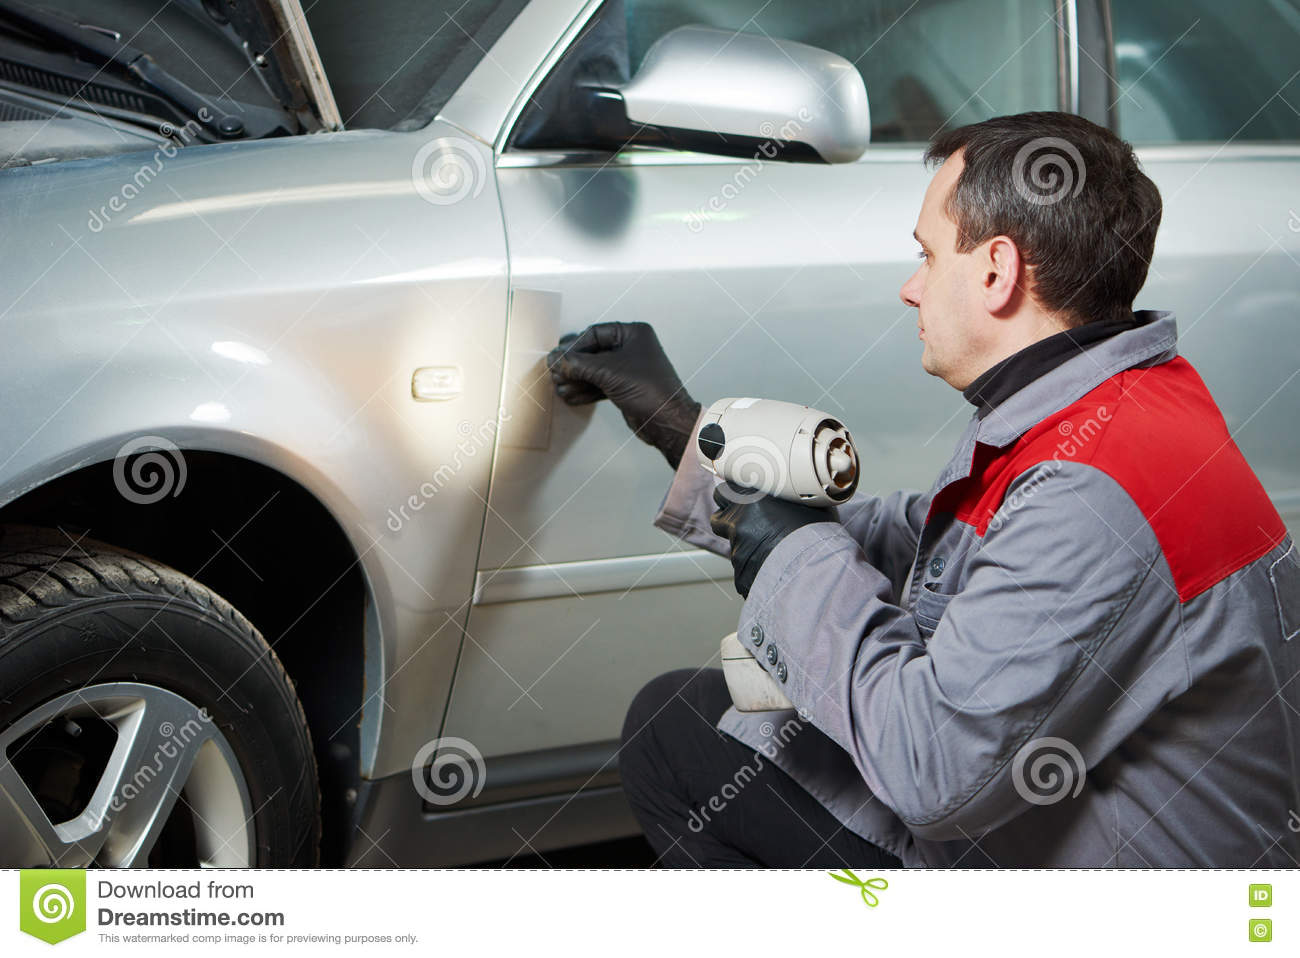 Car paint samples stock photo. Image of azure, instance 56435334.